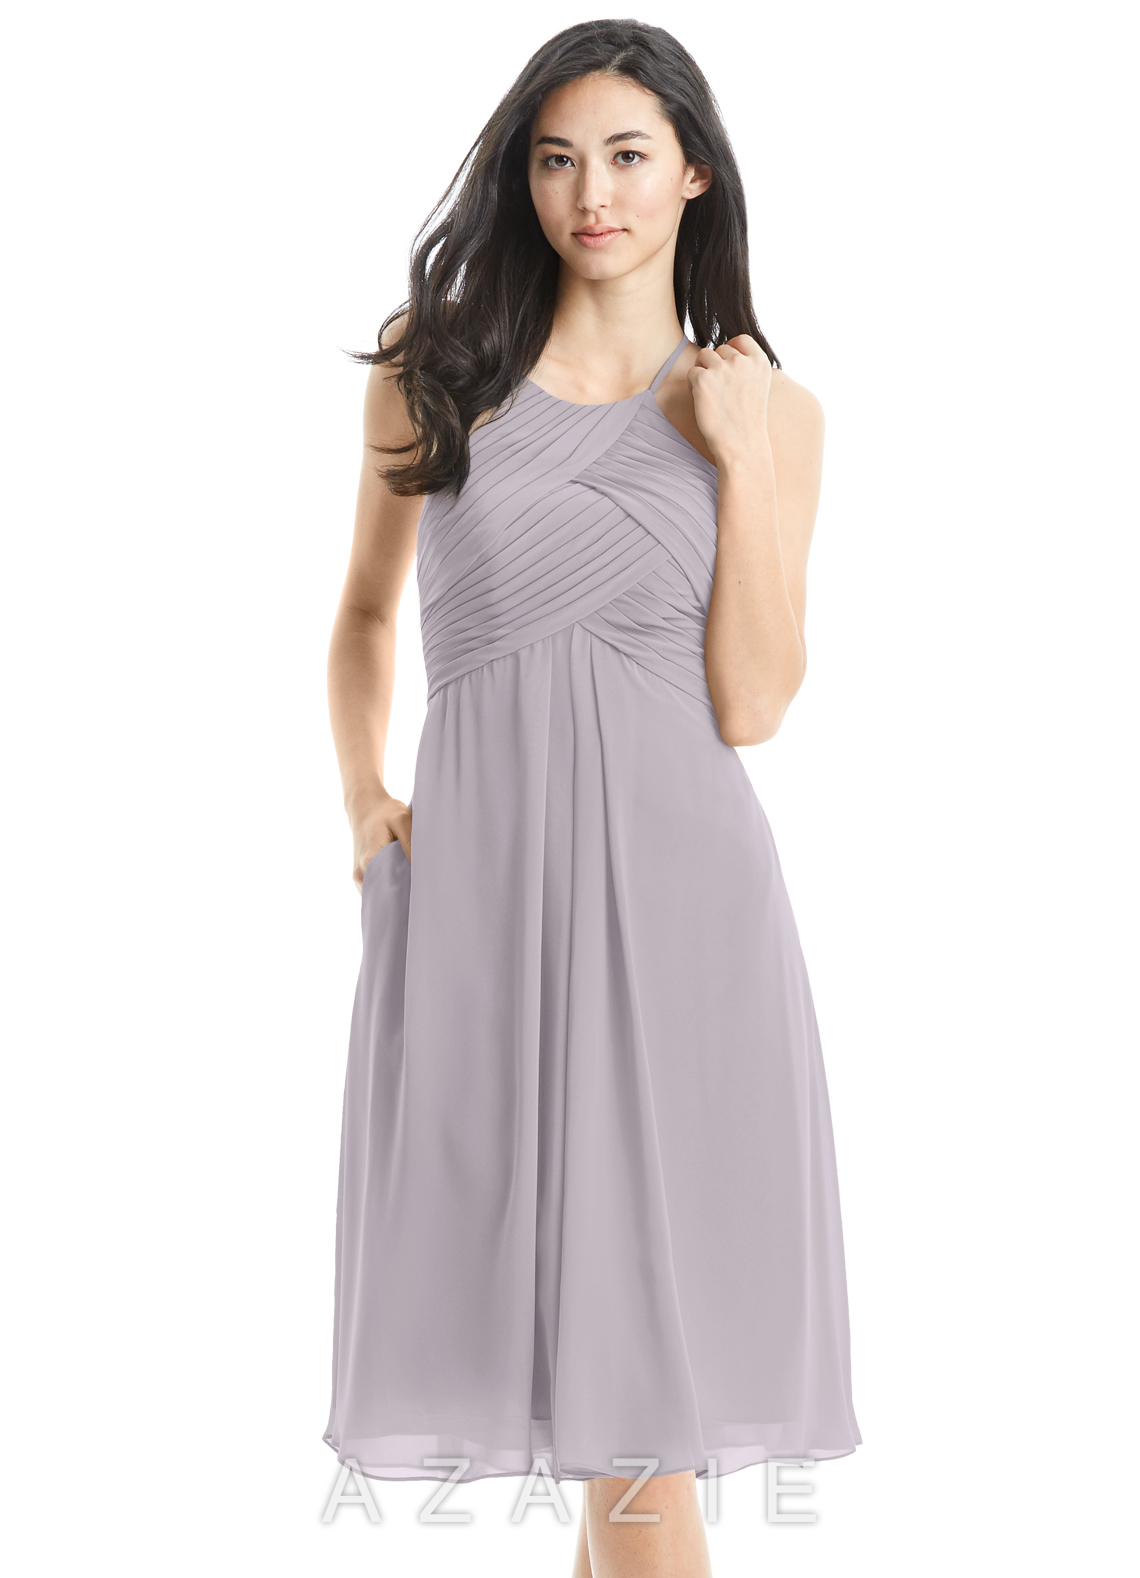 Azazie adriana bridesmaid dress azazie home bridesmaid dresses azazie adriana azazie adriana ombrellifo Images